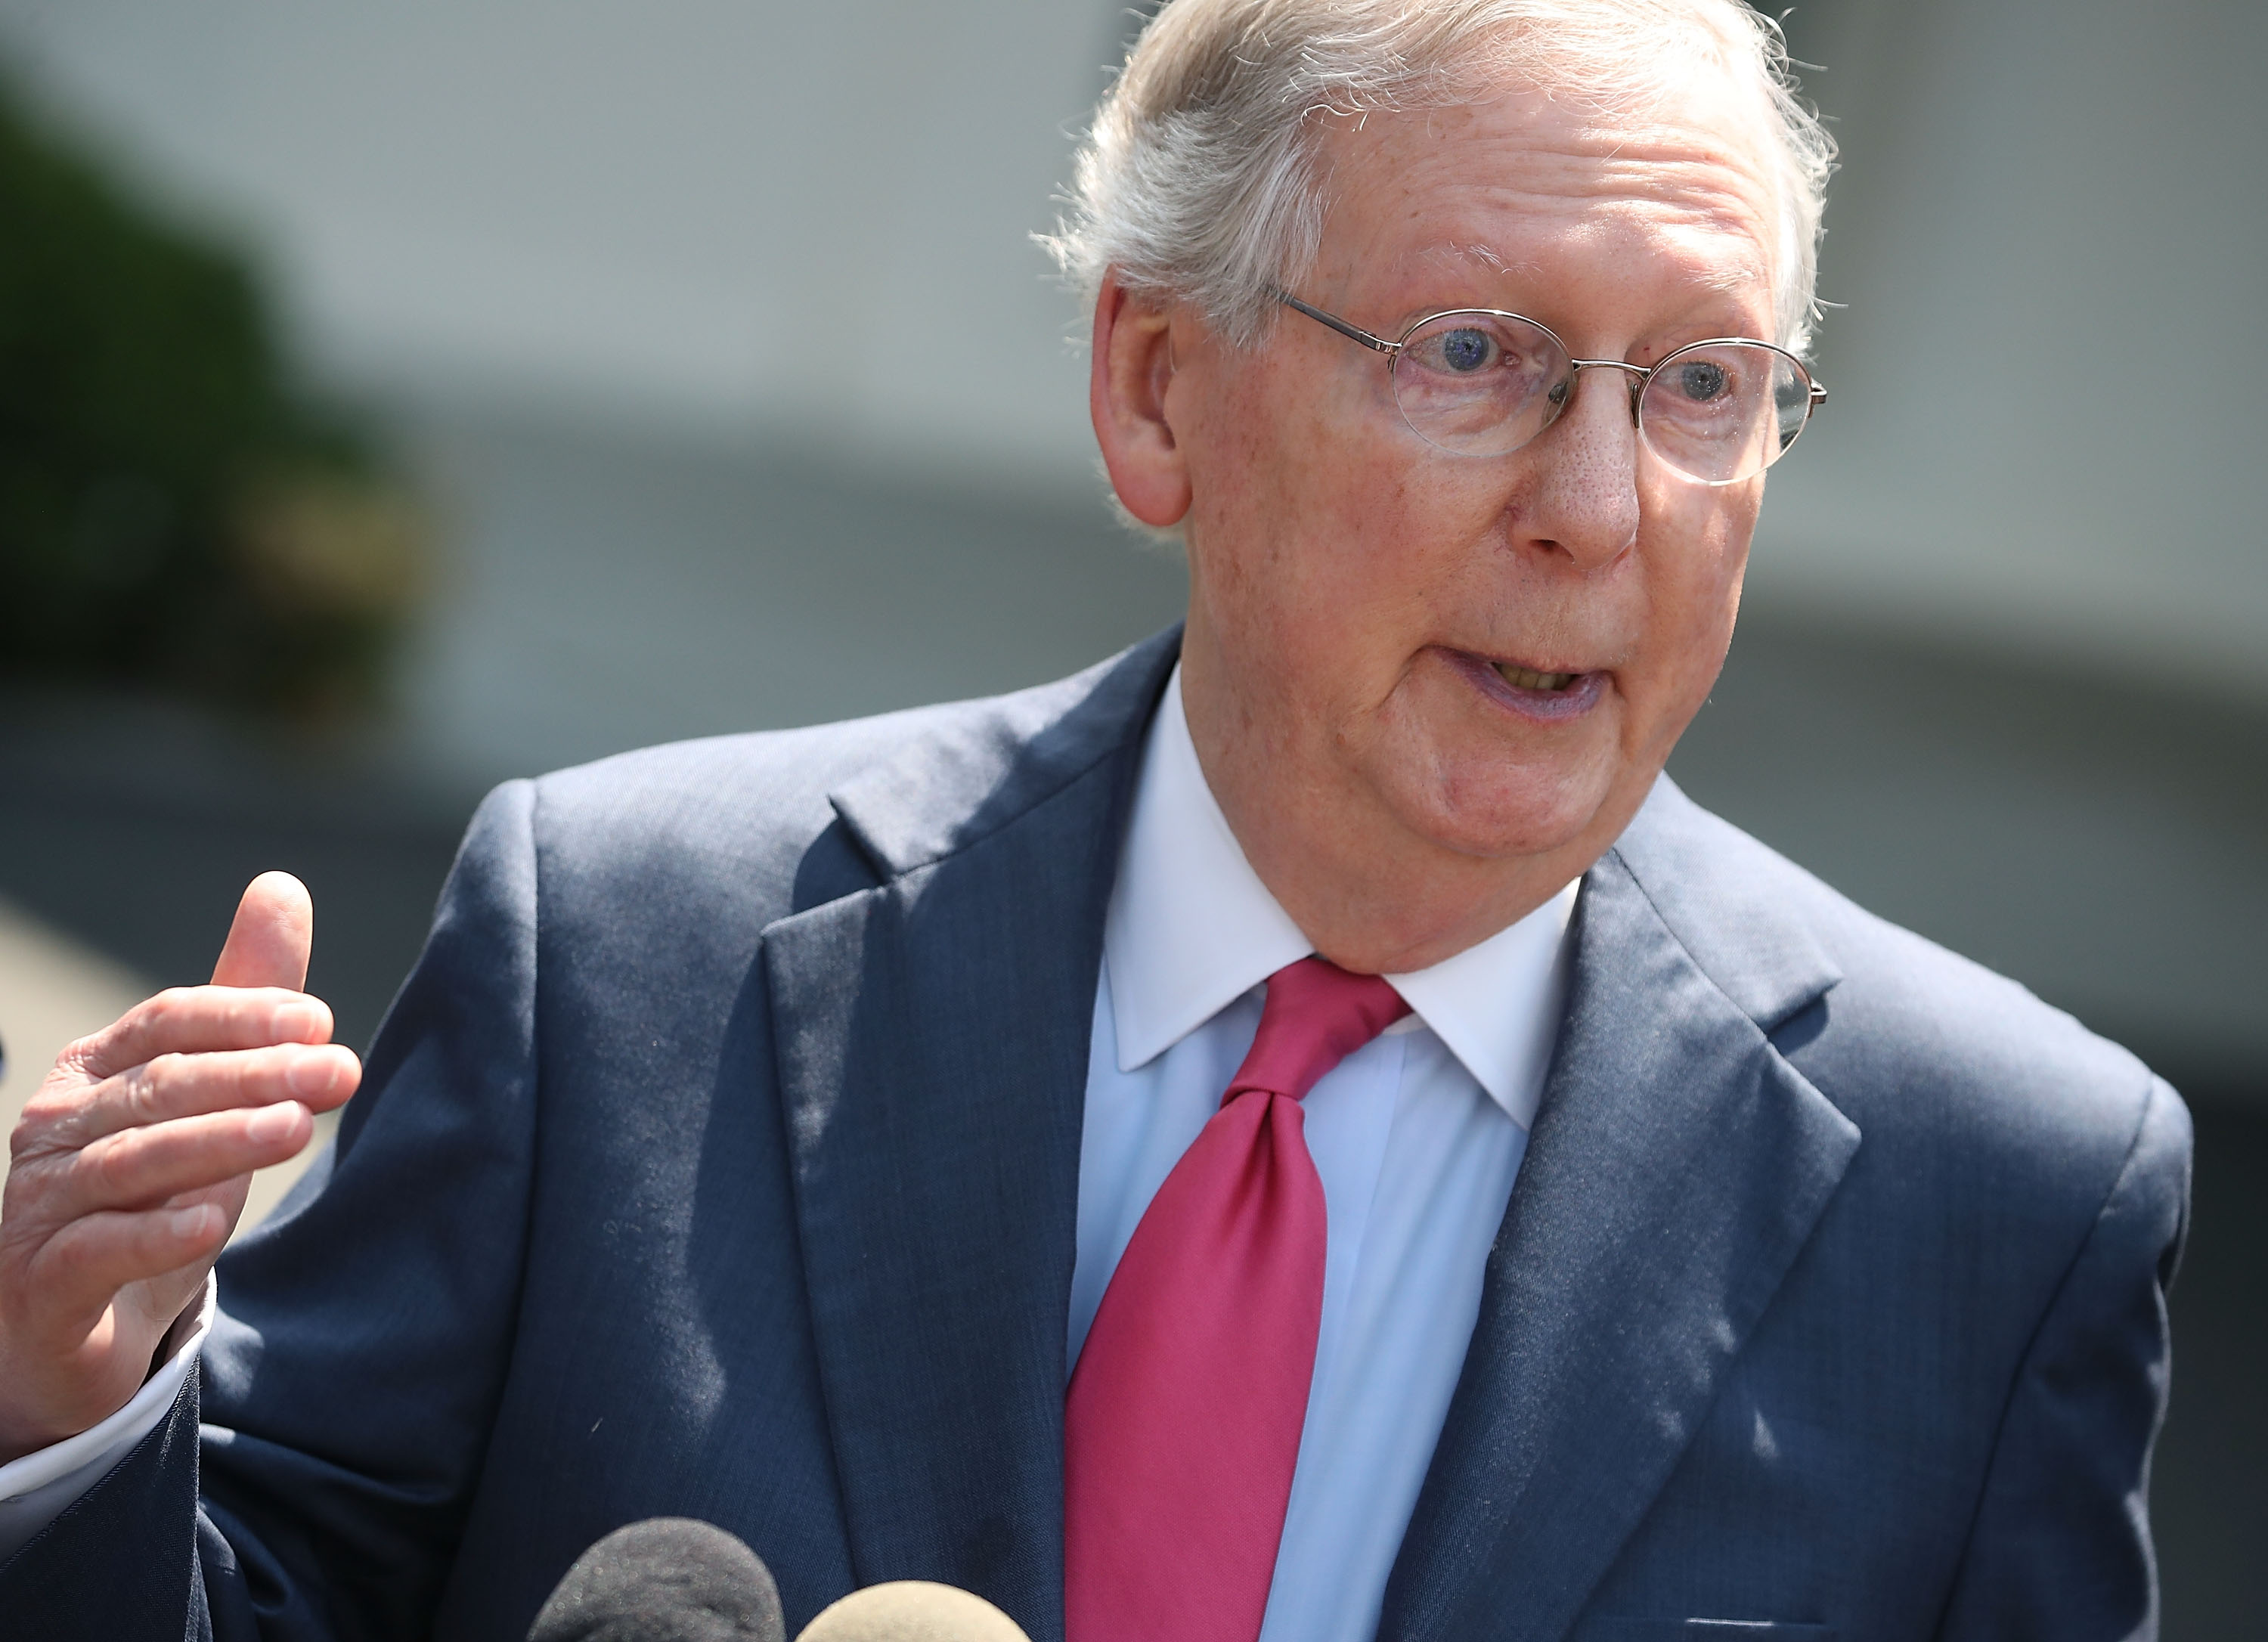 Senate Majority Leader Mitch McConnell (R-KY) speaks to the media July 19, 2017 at the White House in Washington, D.C.